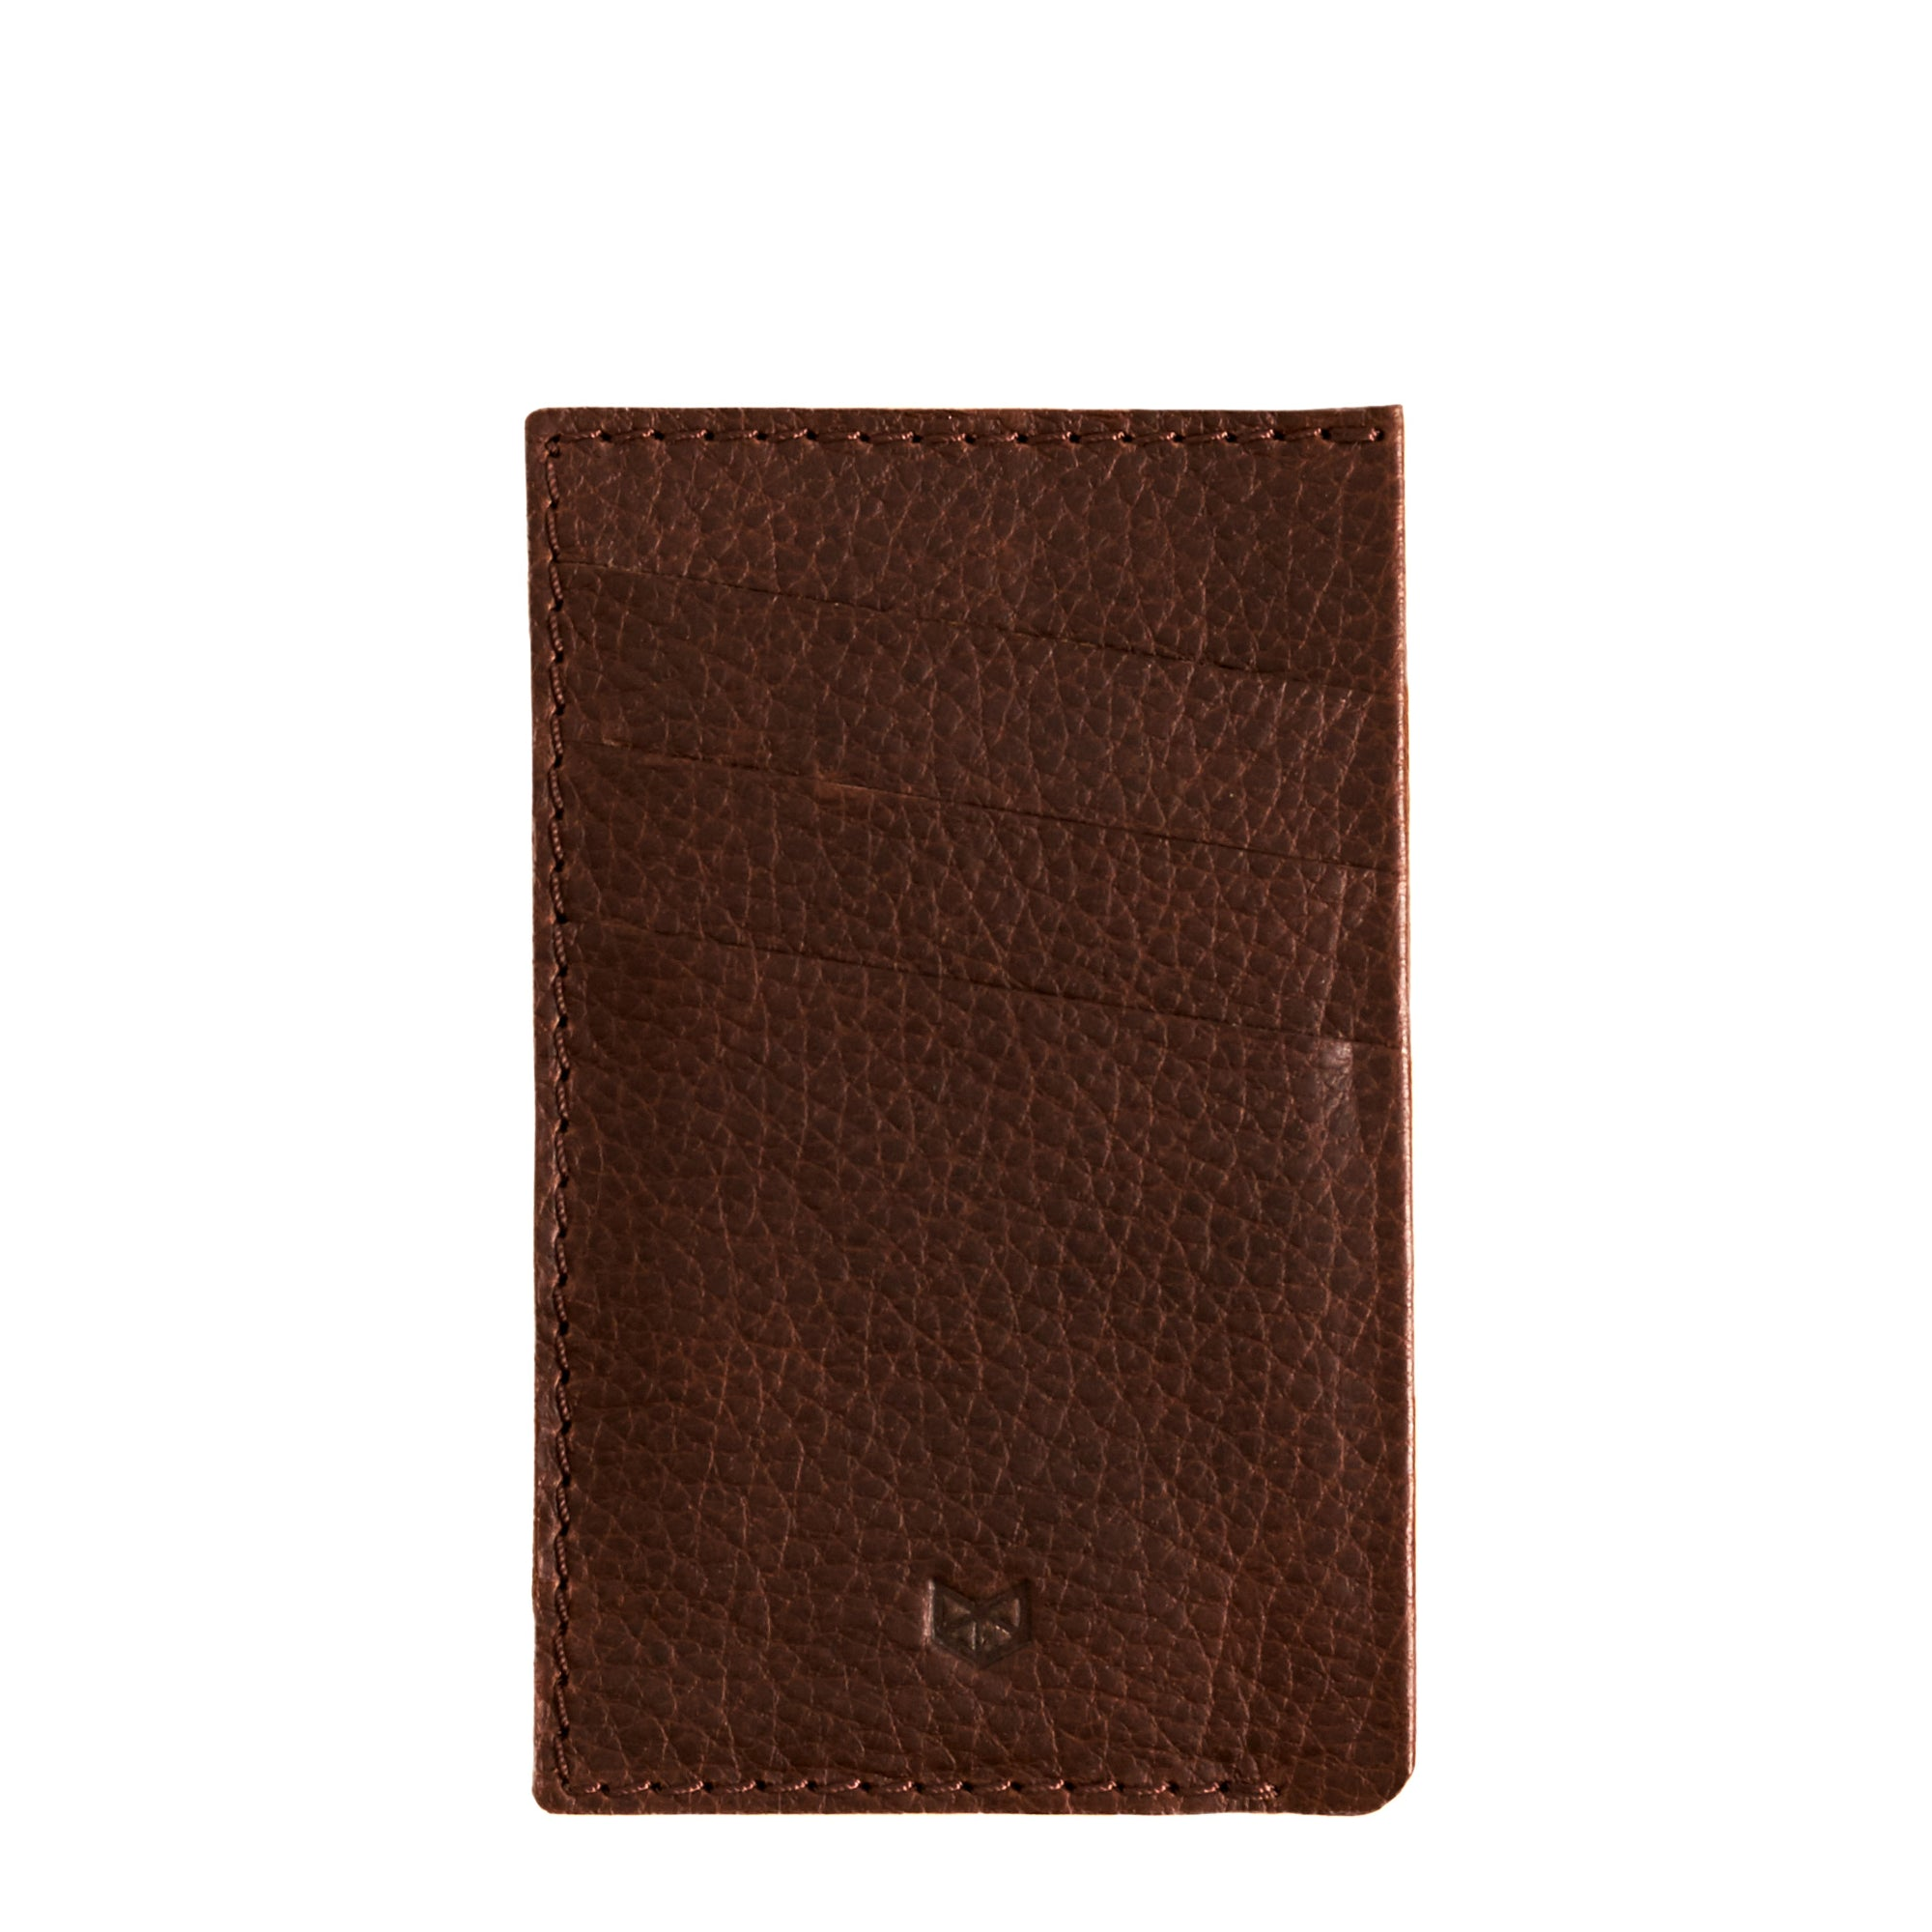 Front Cover. Card Holder Wallet Dark Brown by Capra Leather